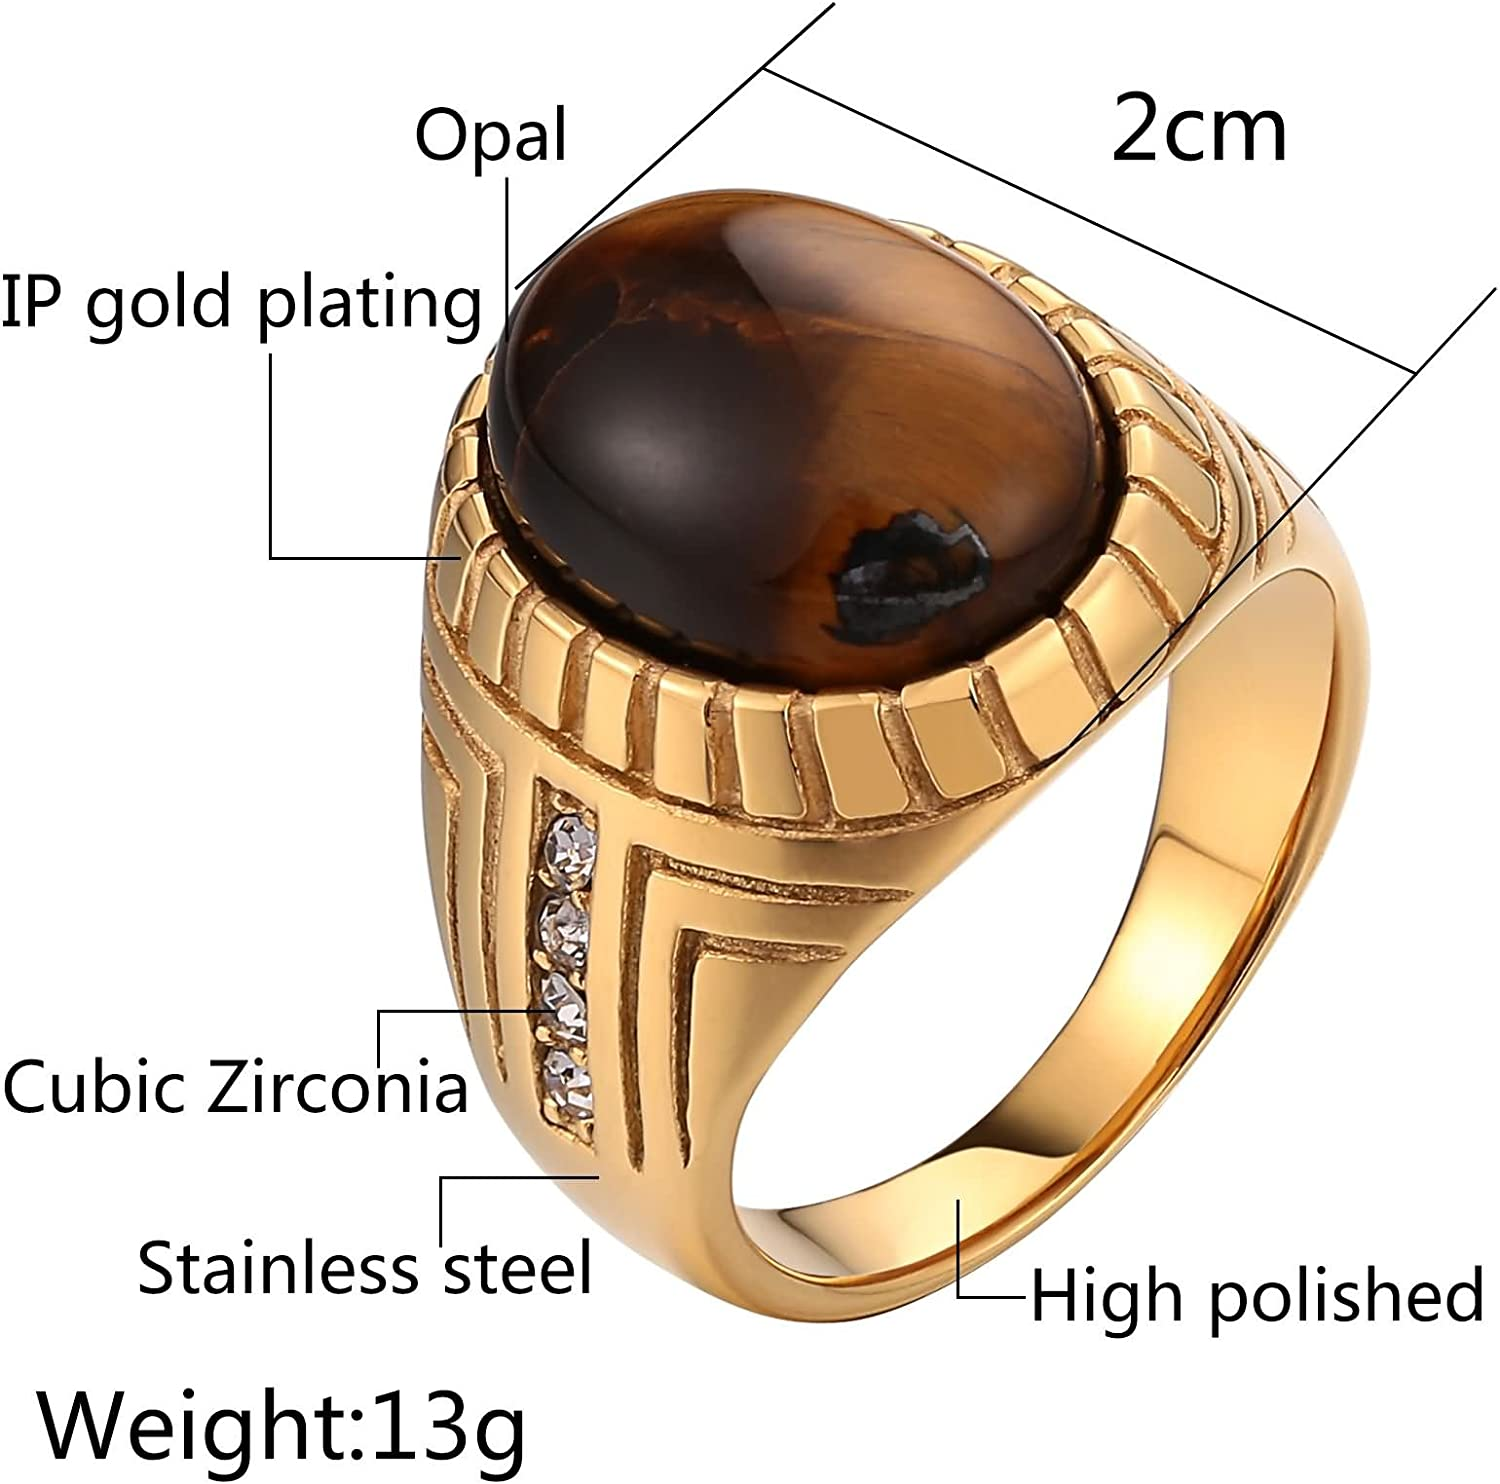 Bishilin Stainless Steel Ring Vintage 2CM Oval Opal White Cubic Zirconia Wedding Ring Men